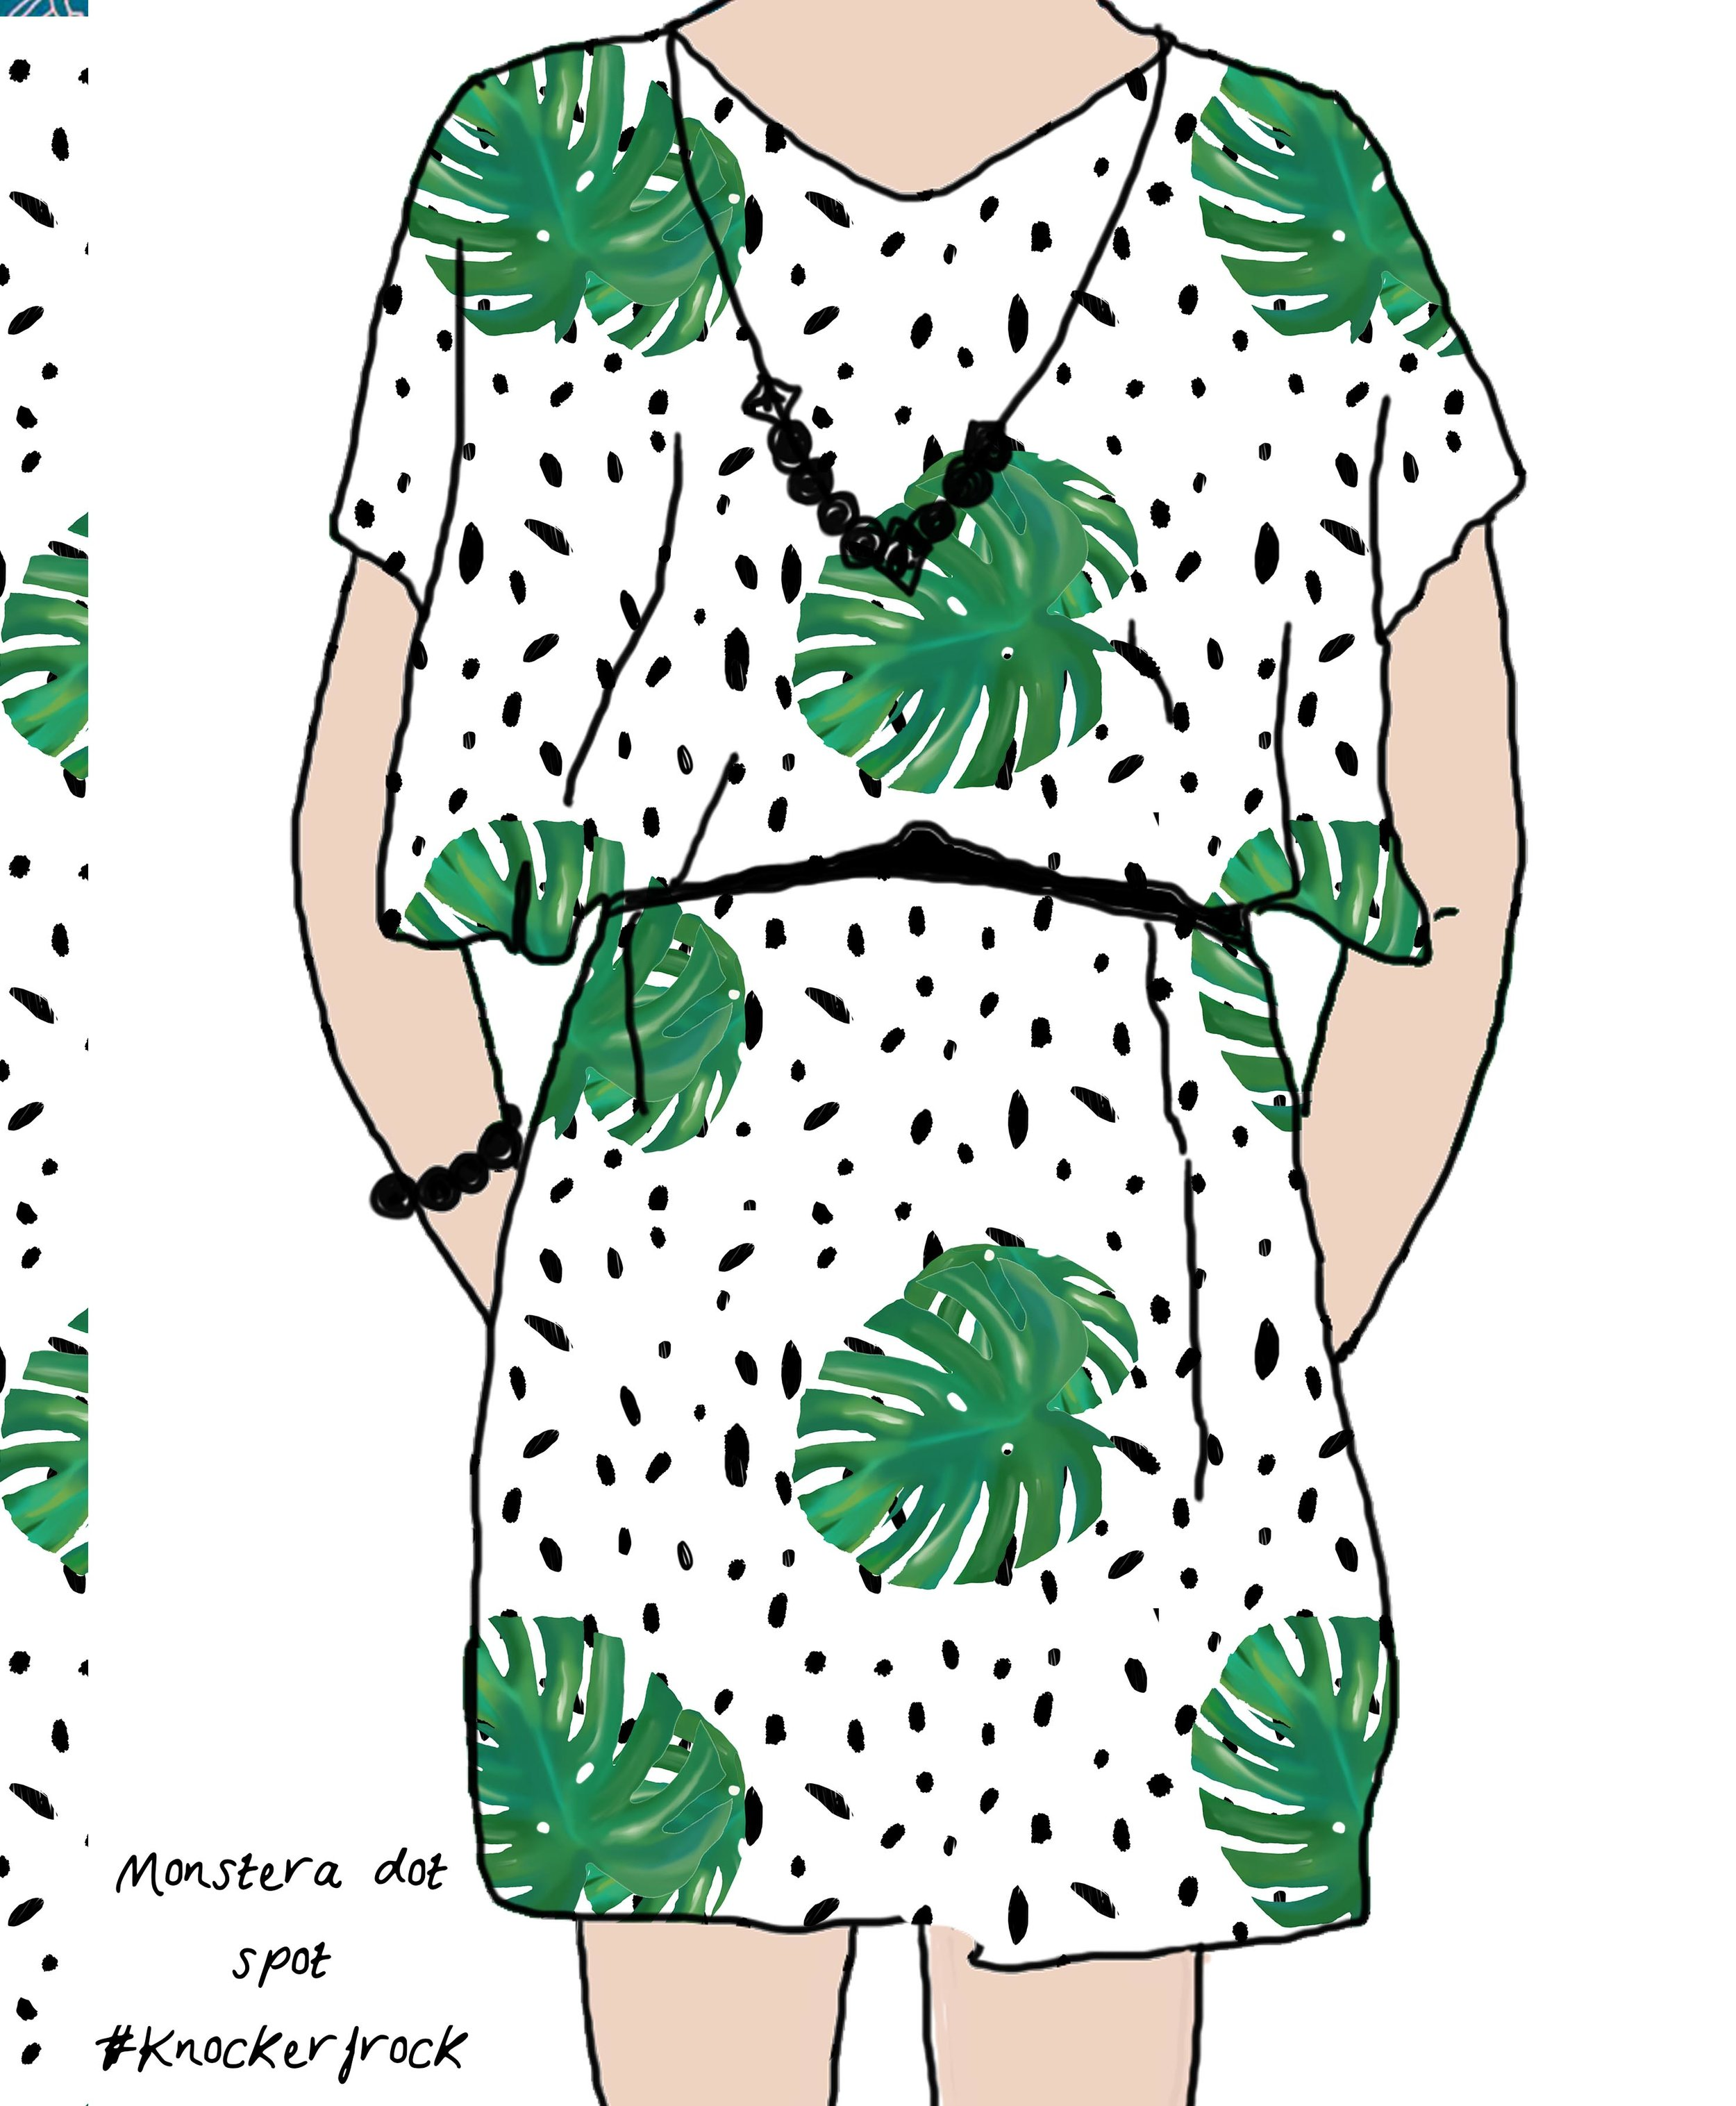 monstera dot spot knockerfrock.jpg